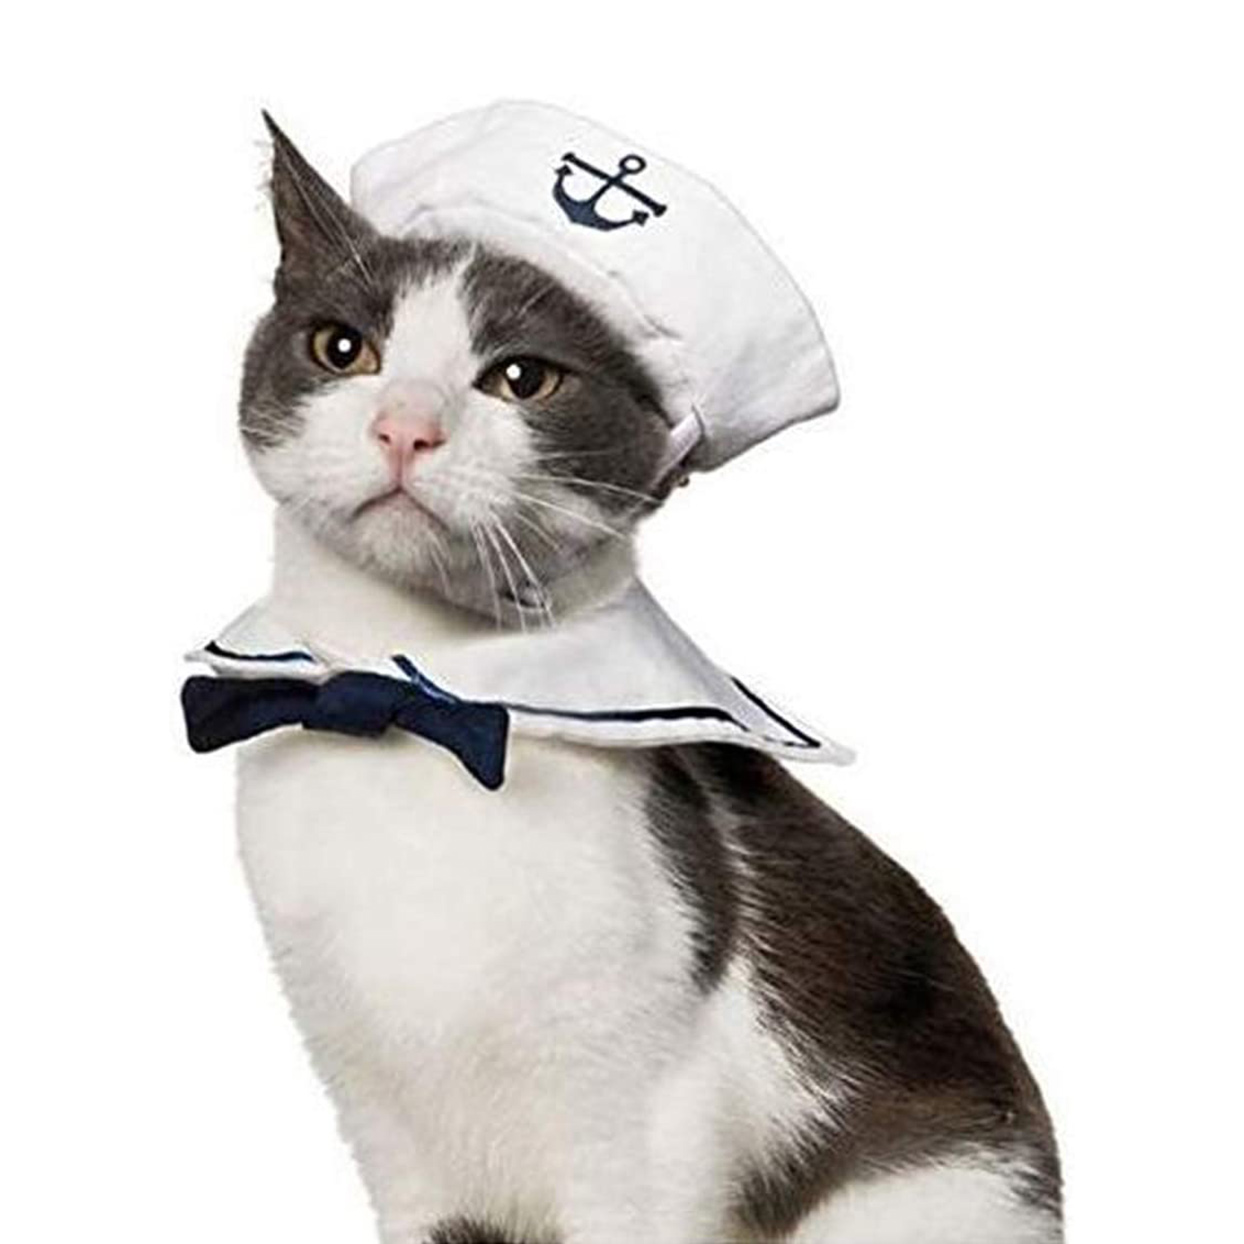 Cat wearing a NAMSAN Pet Sailor Costume on a white background